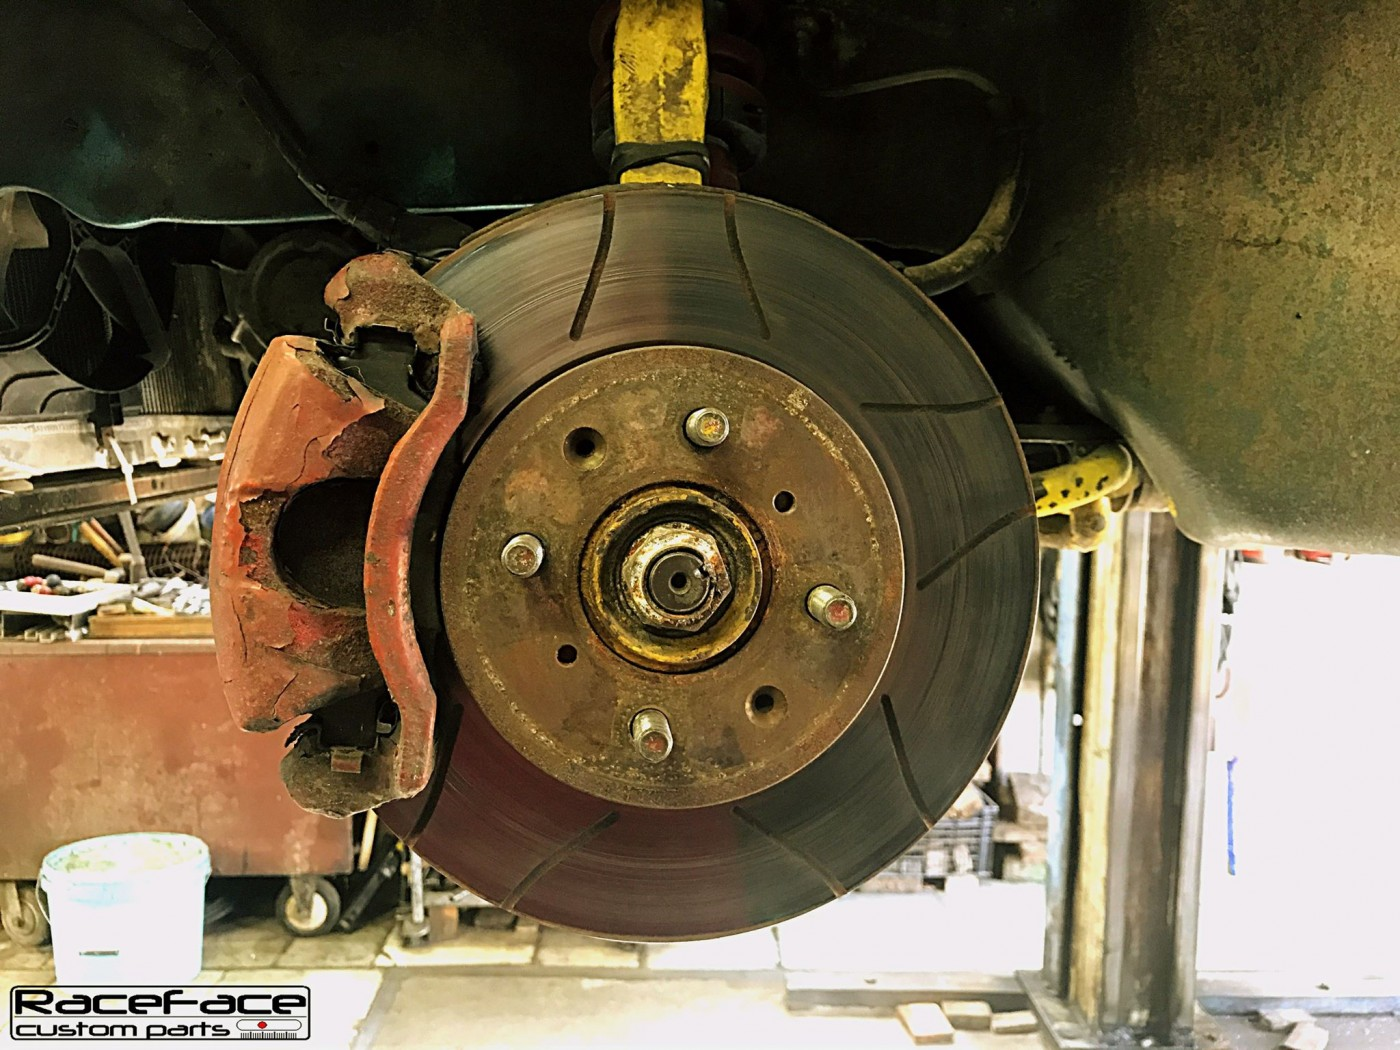 Old brakes system